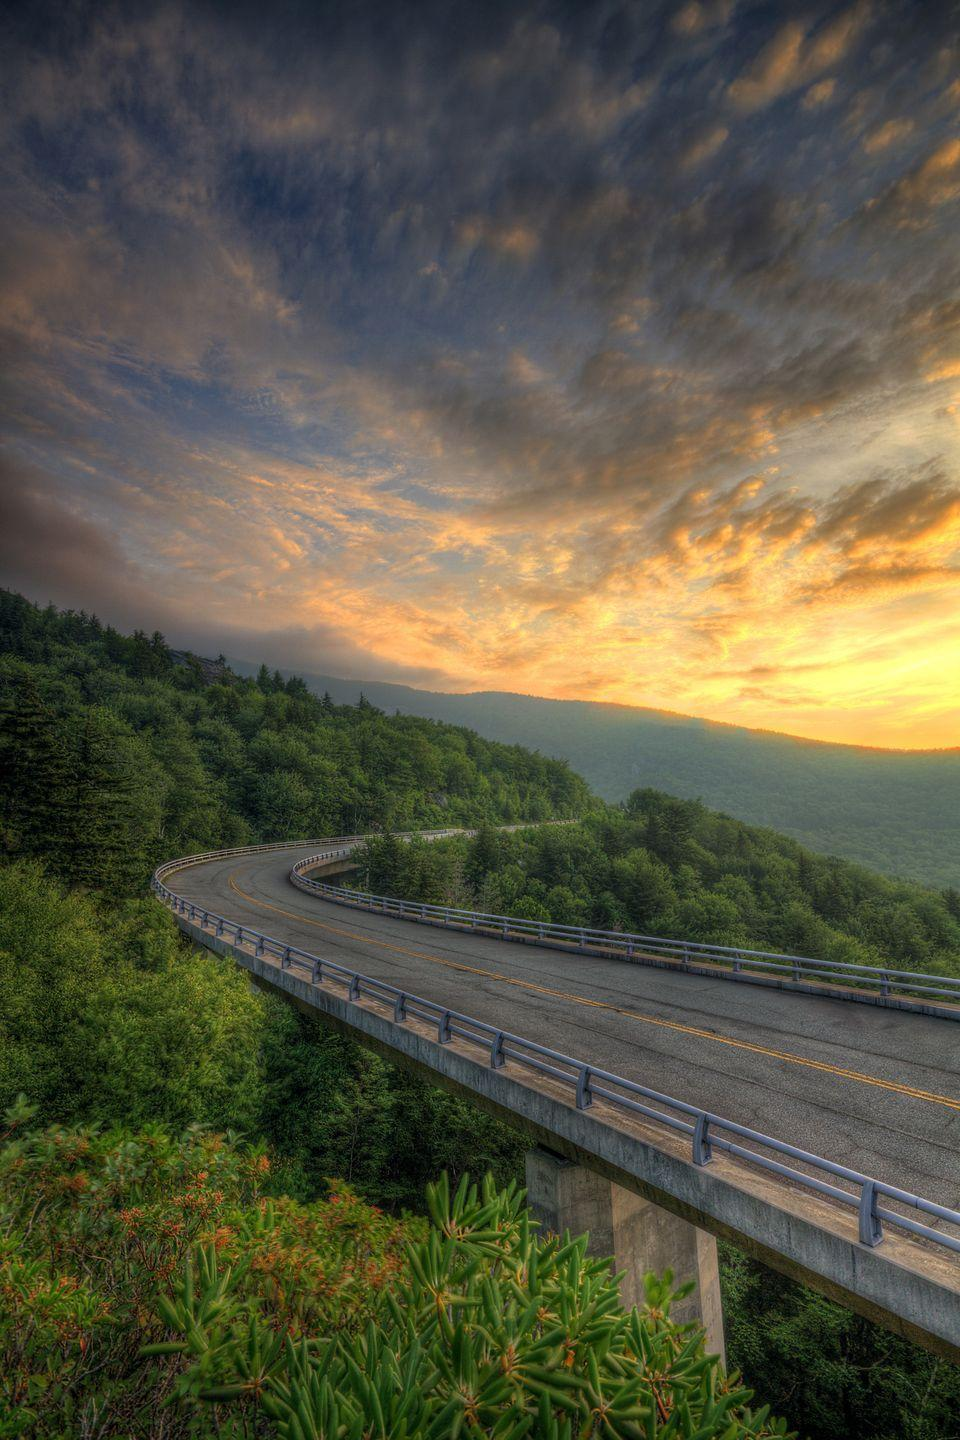 "<p><strong>Where: </strong>Blue Ridge Parkway, North Carolina and Virginia</p><p><strong>Why We Love It: </strong><a href=""https://www.countryliving.com/life/travel/g4454/most-scenic-drives-in-america/"" rel=""nofollow noopener"" target=""_blank"" data-ylk=""slk:This stretch of road"" class=""link rapid-noclick-resp"">This stretch of road</a> that meanders 469 miles through the Appalachian Mountains is the most visited place in the U.S. National Park Service.</p>"